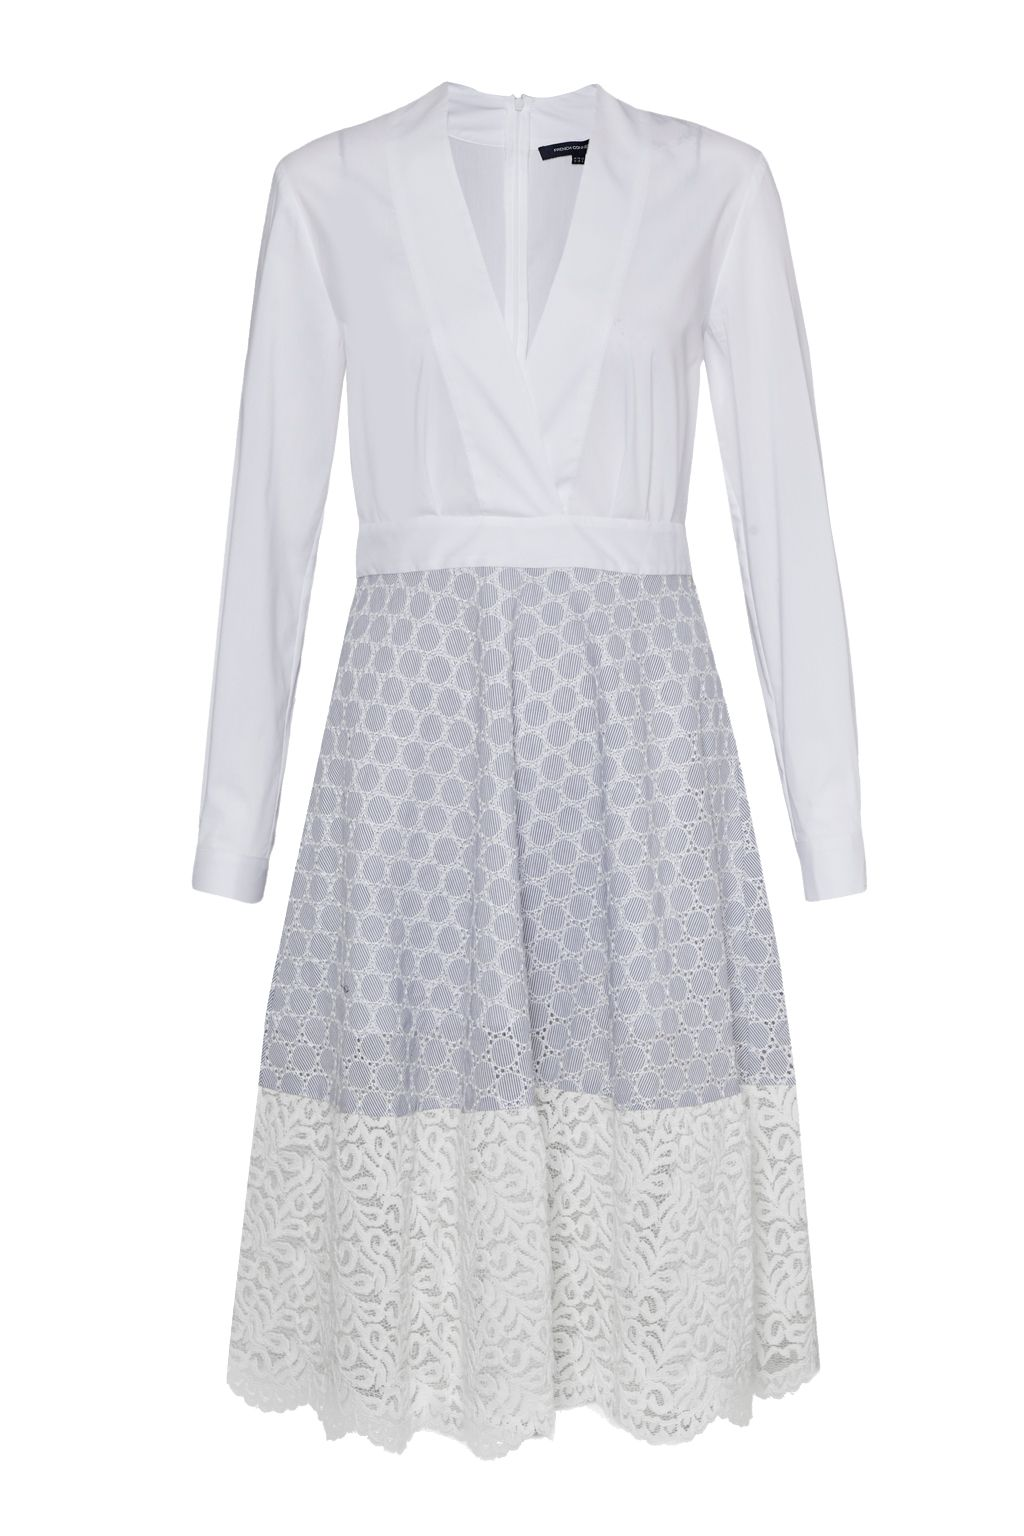 French Connection Oni Lace Mix Flared Cotton Dress, White